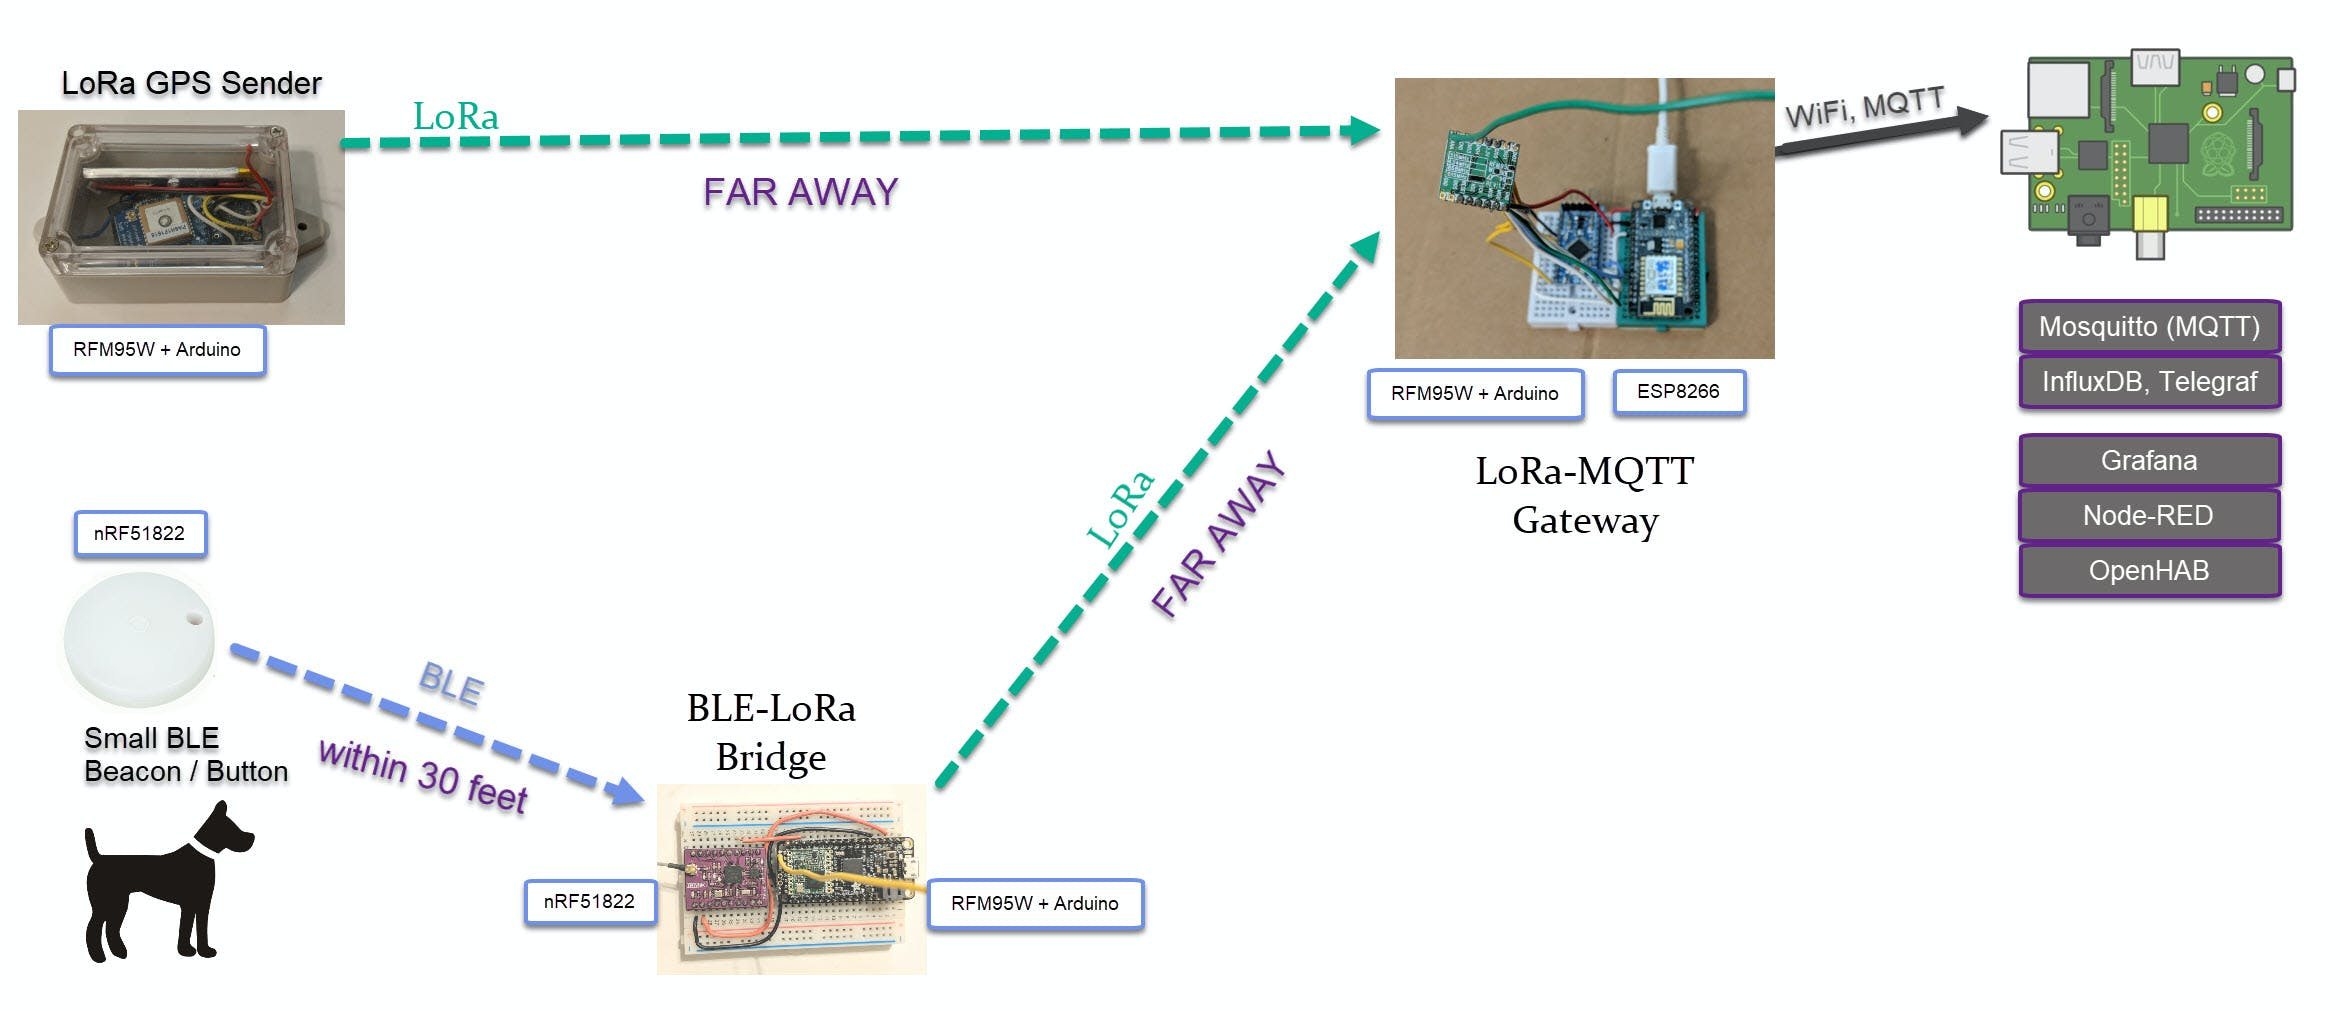 Architecture to extend BLE range via LoRa bridge